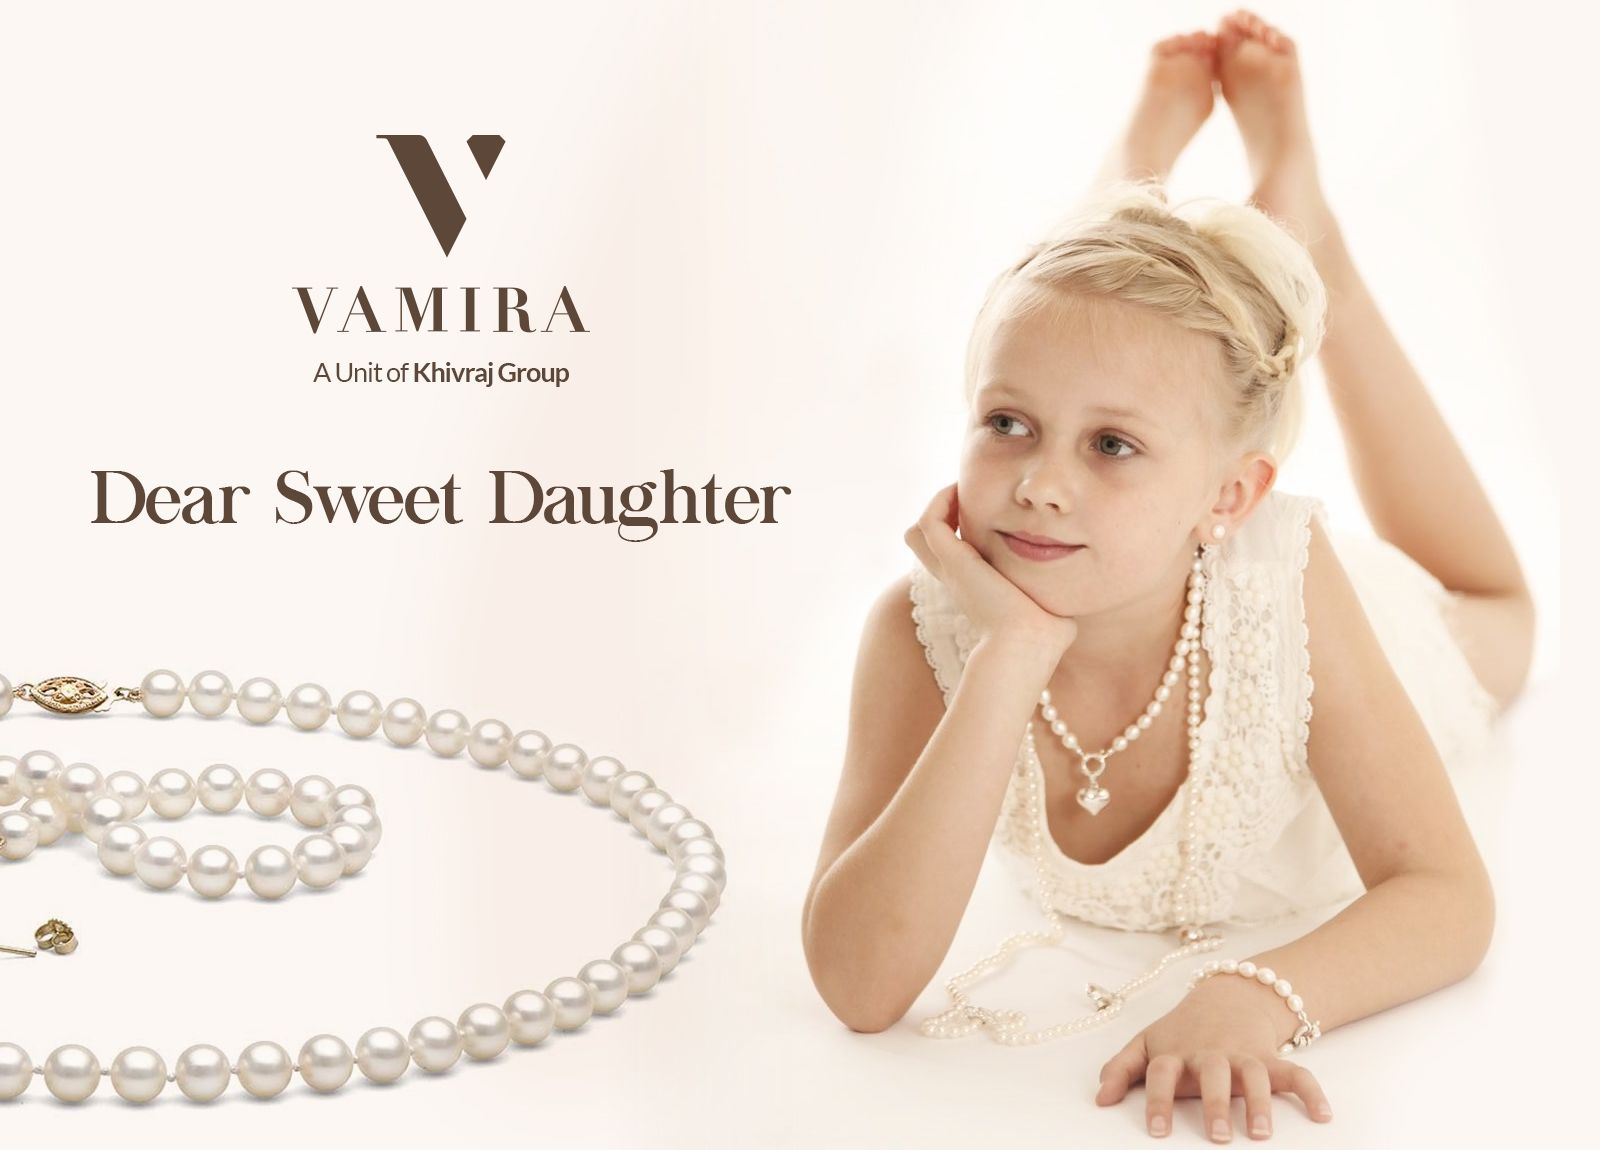 A precious #gift for our #precious little #angel. Visit www.vamira.in or book your #personal #appointment now! Call us on +91 99941 82700 +91 99417 11355 or write to us at hello@vamira.in